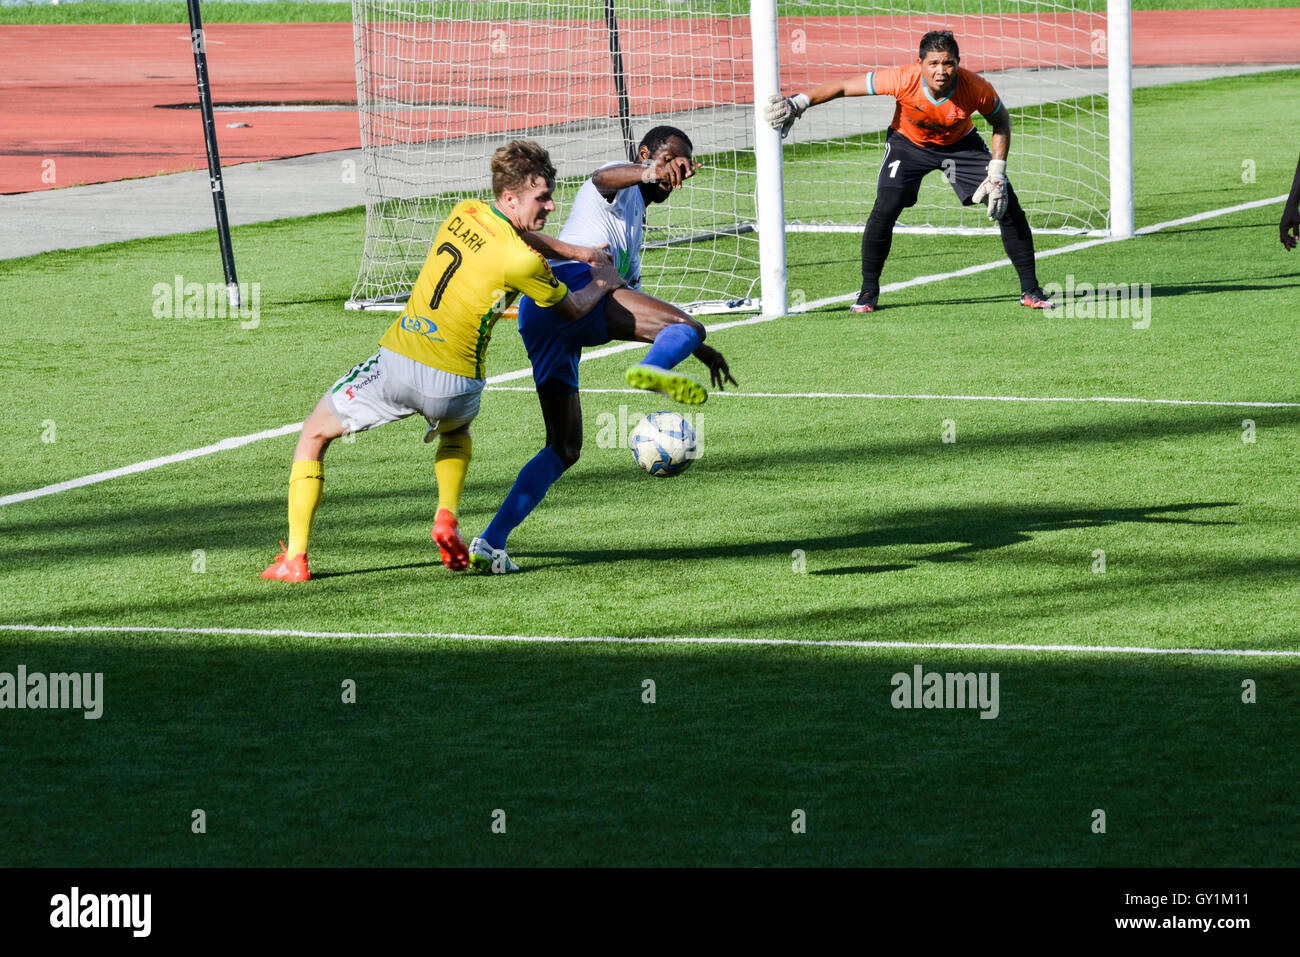 Professional Football Philippines, United League - Kaya vs Stallions - Stock Image